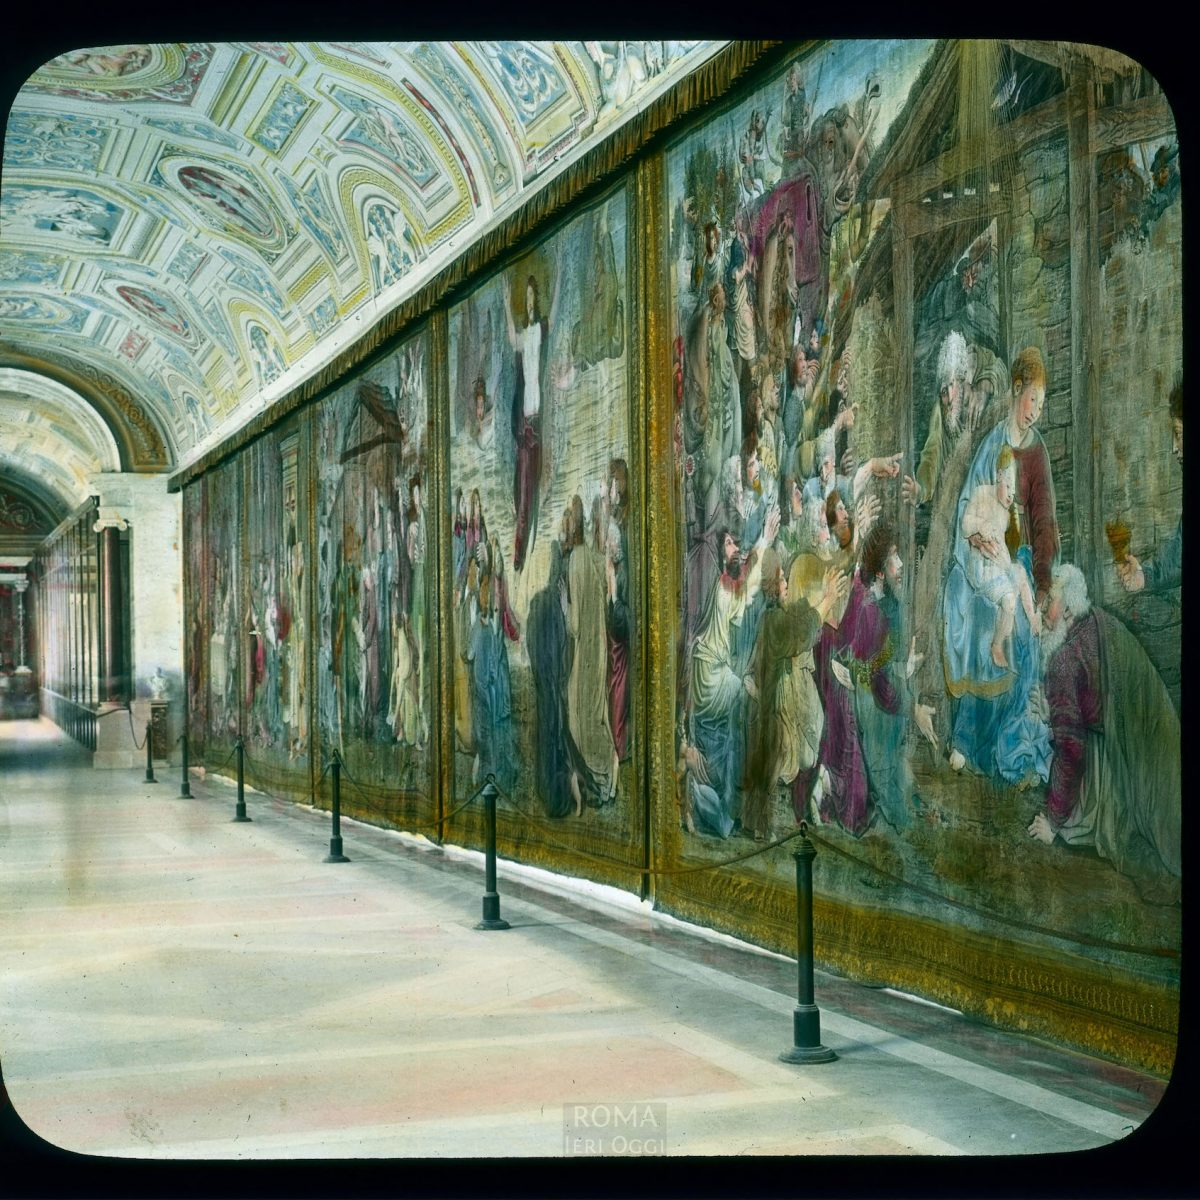 Vatican City. Vatican Museum, Museo Pio-Clementino: interior, Gallery of the Tapestries View in tinted lantern slide, ca. 1919-1938. The museum dates from ca. 1771.